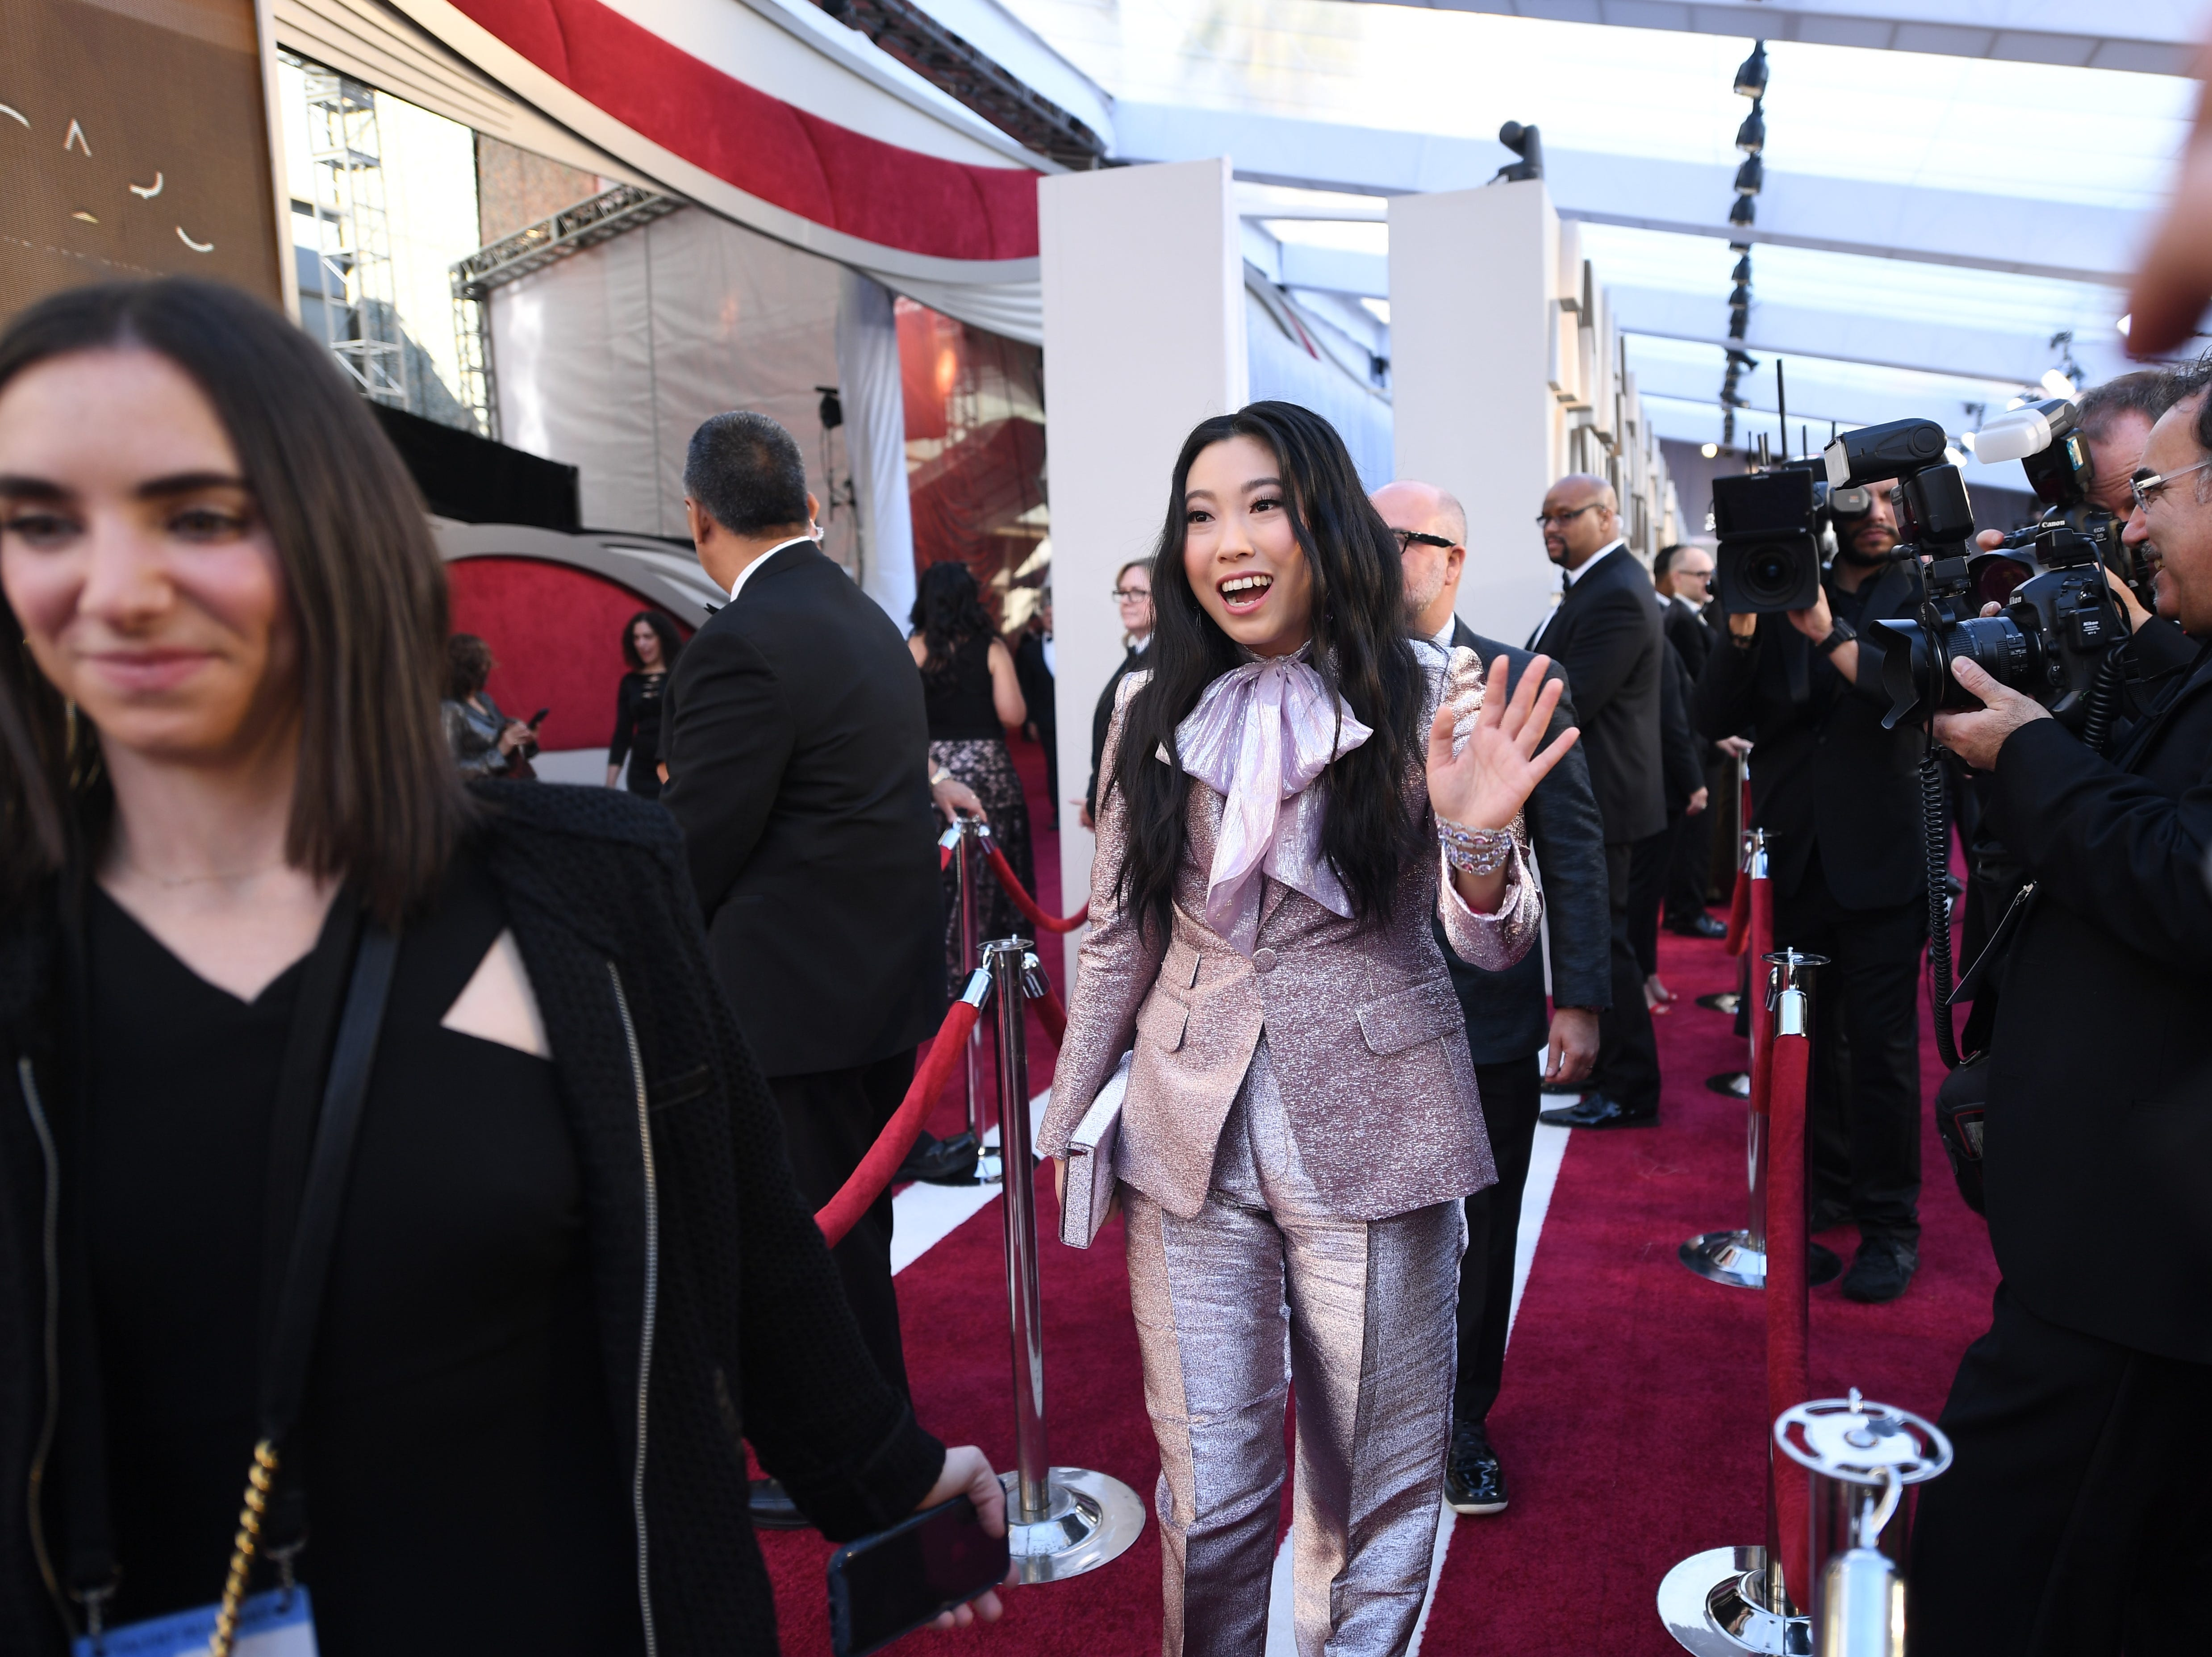 February 24, 2019; Los Angeles, CA, USA; Awkwafina arrives at the 91st Academy Awards at the Dolby Theatre. Mandatory Credit: Robert Hanashiro-USA TODAY NETWORK (Via OlyDrop)